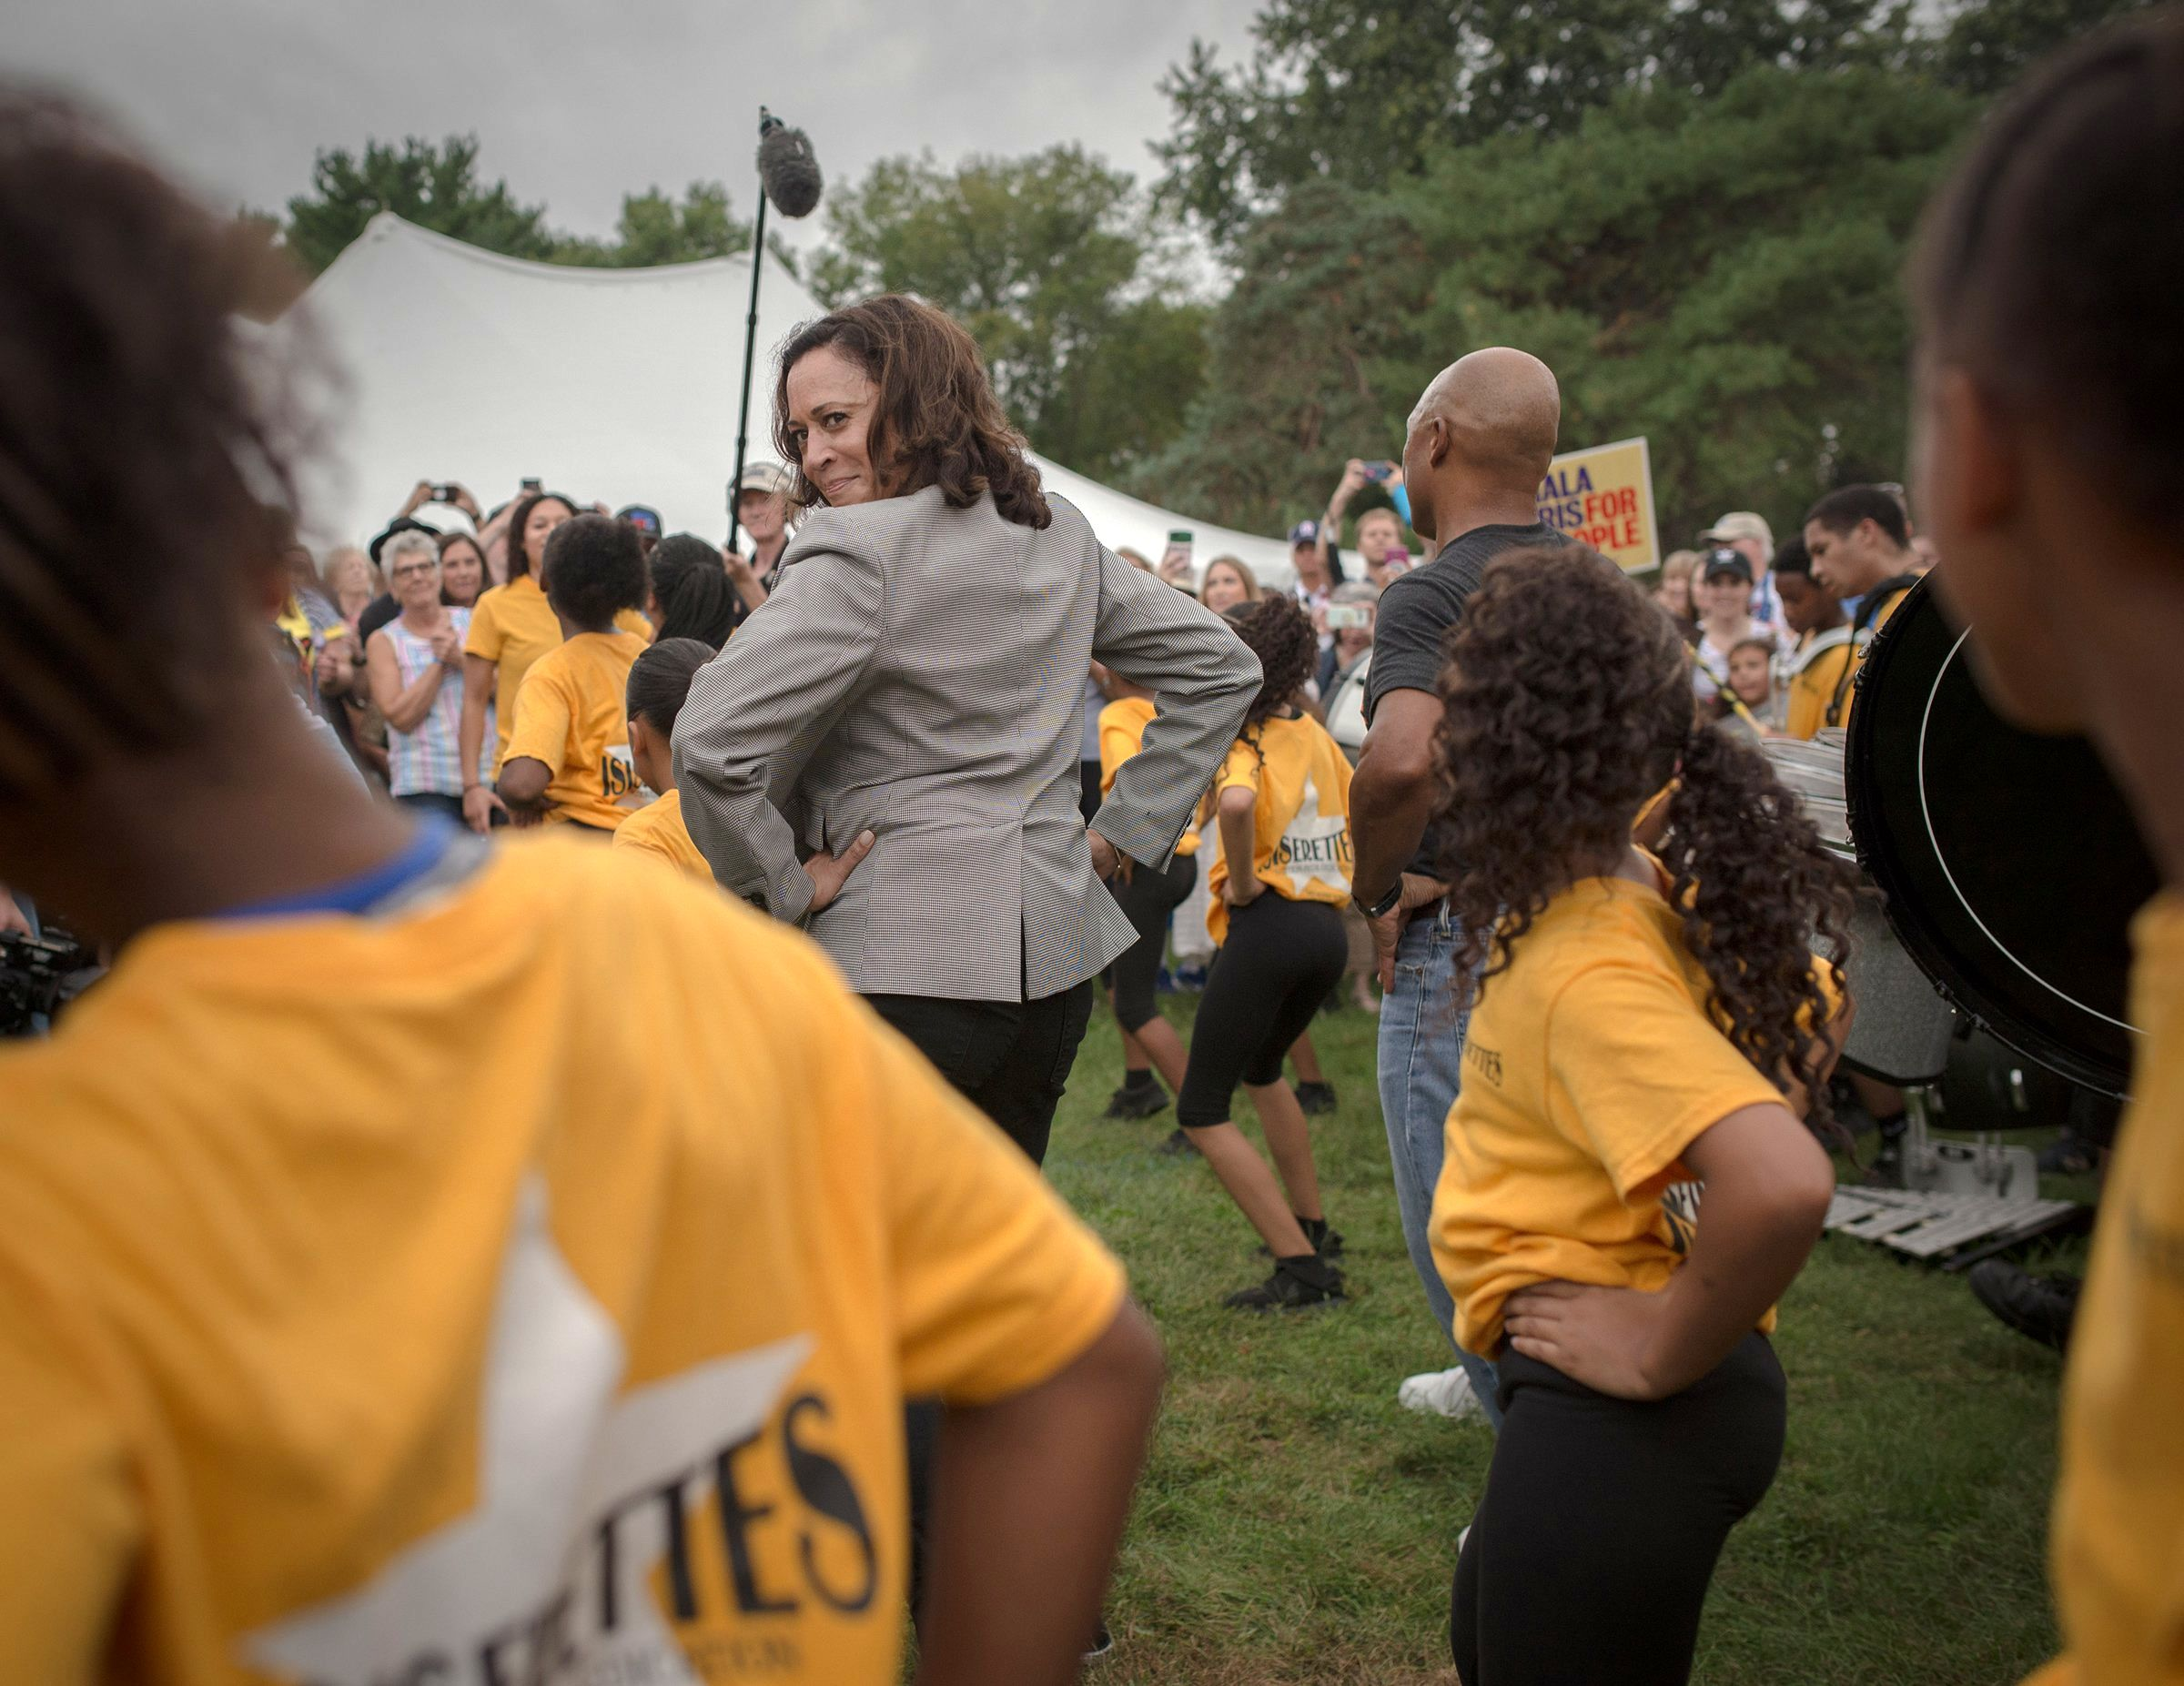 Kamala Harris takes a cue from a local drill team at the Des Moines Steakfry on Sept. 21. Once a promising presidential hopeful, the California Senator announced she was dropping out of the 2020 presidential race in early December.